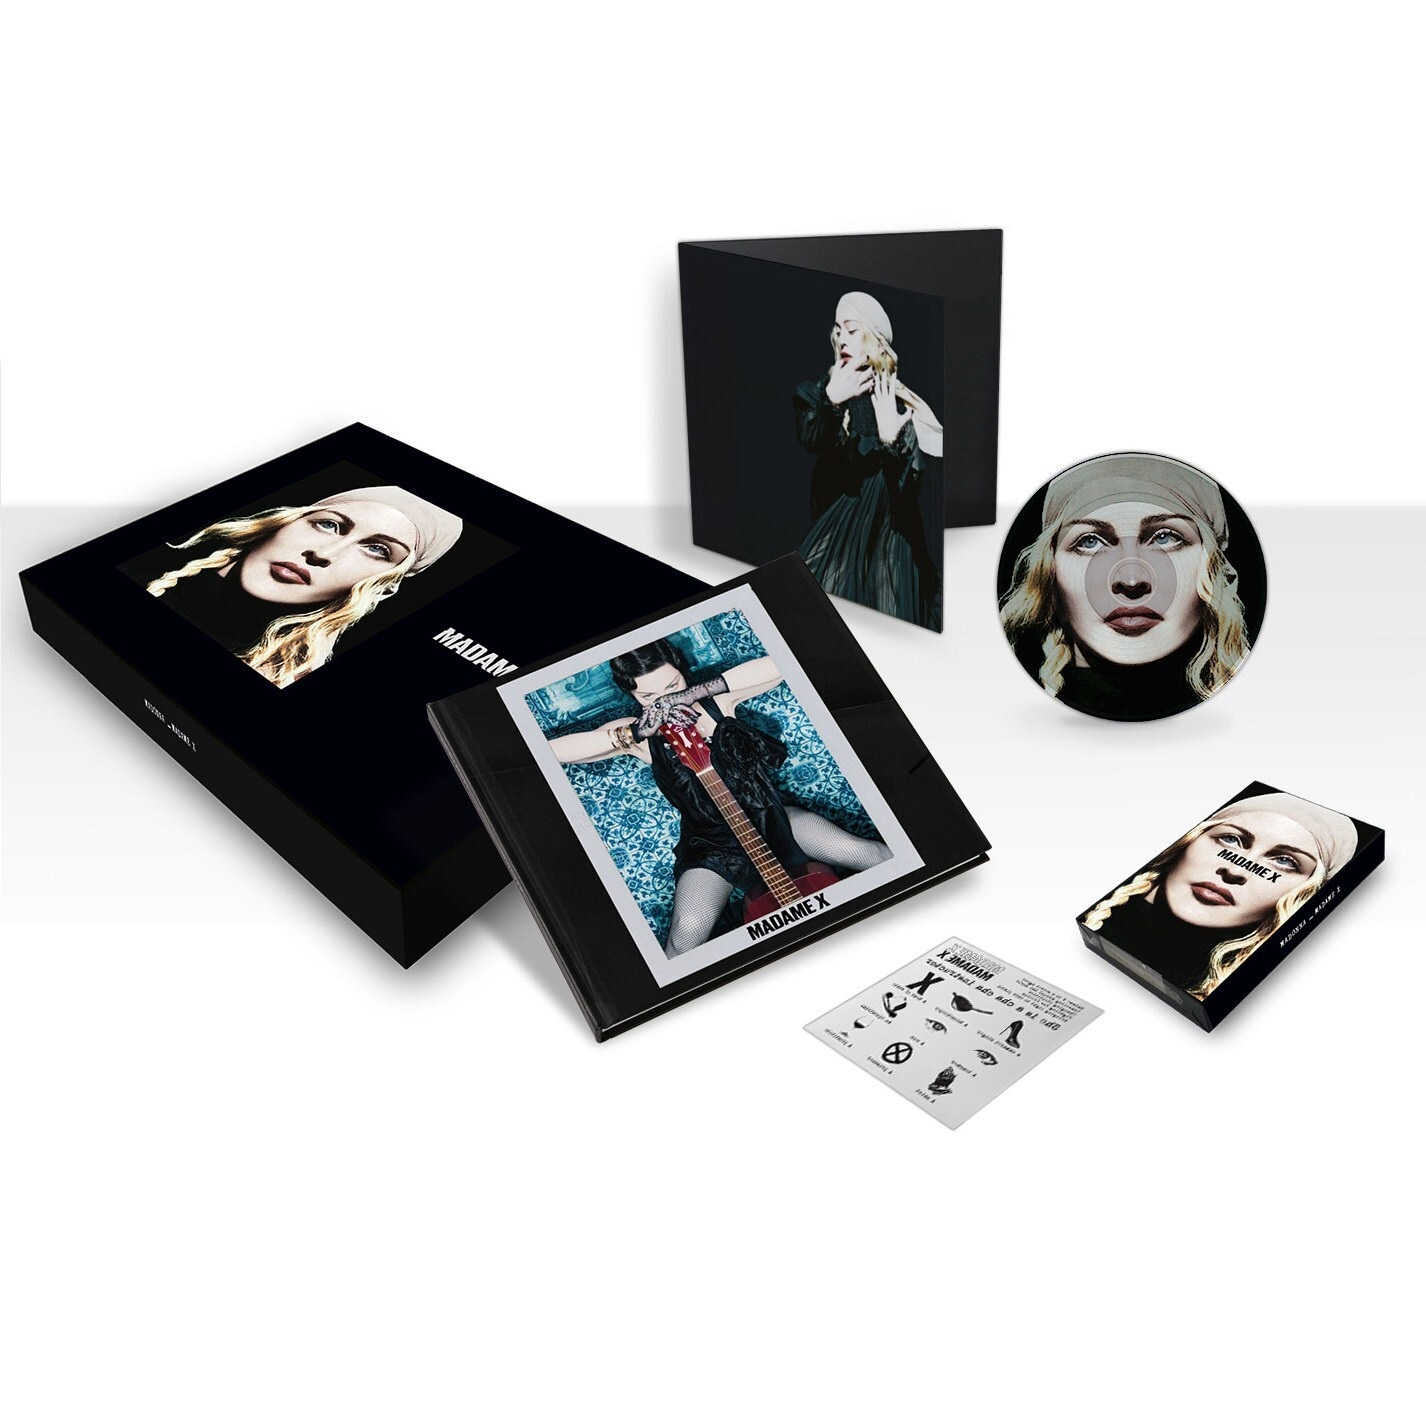 Madonna - CD Madame X Deluxe Box Set